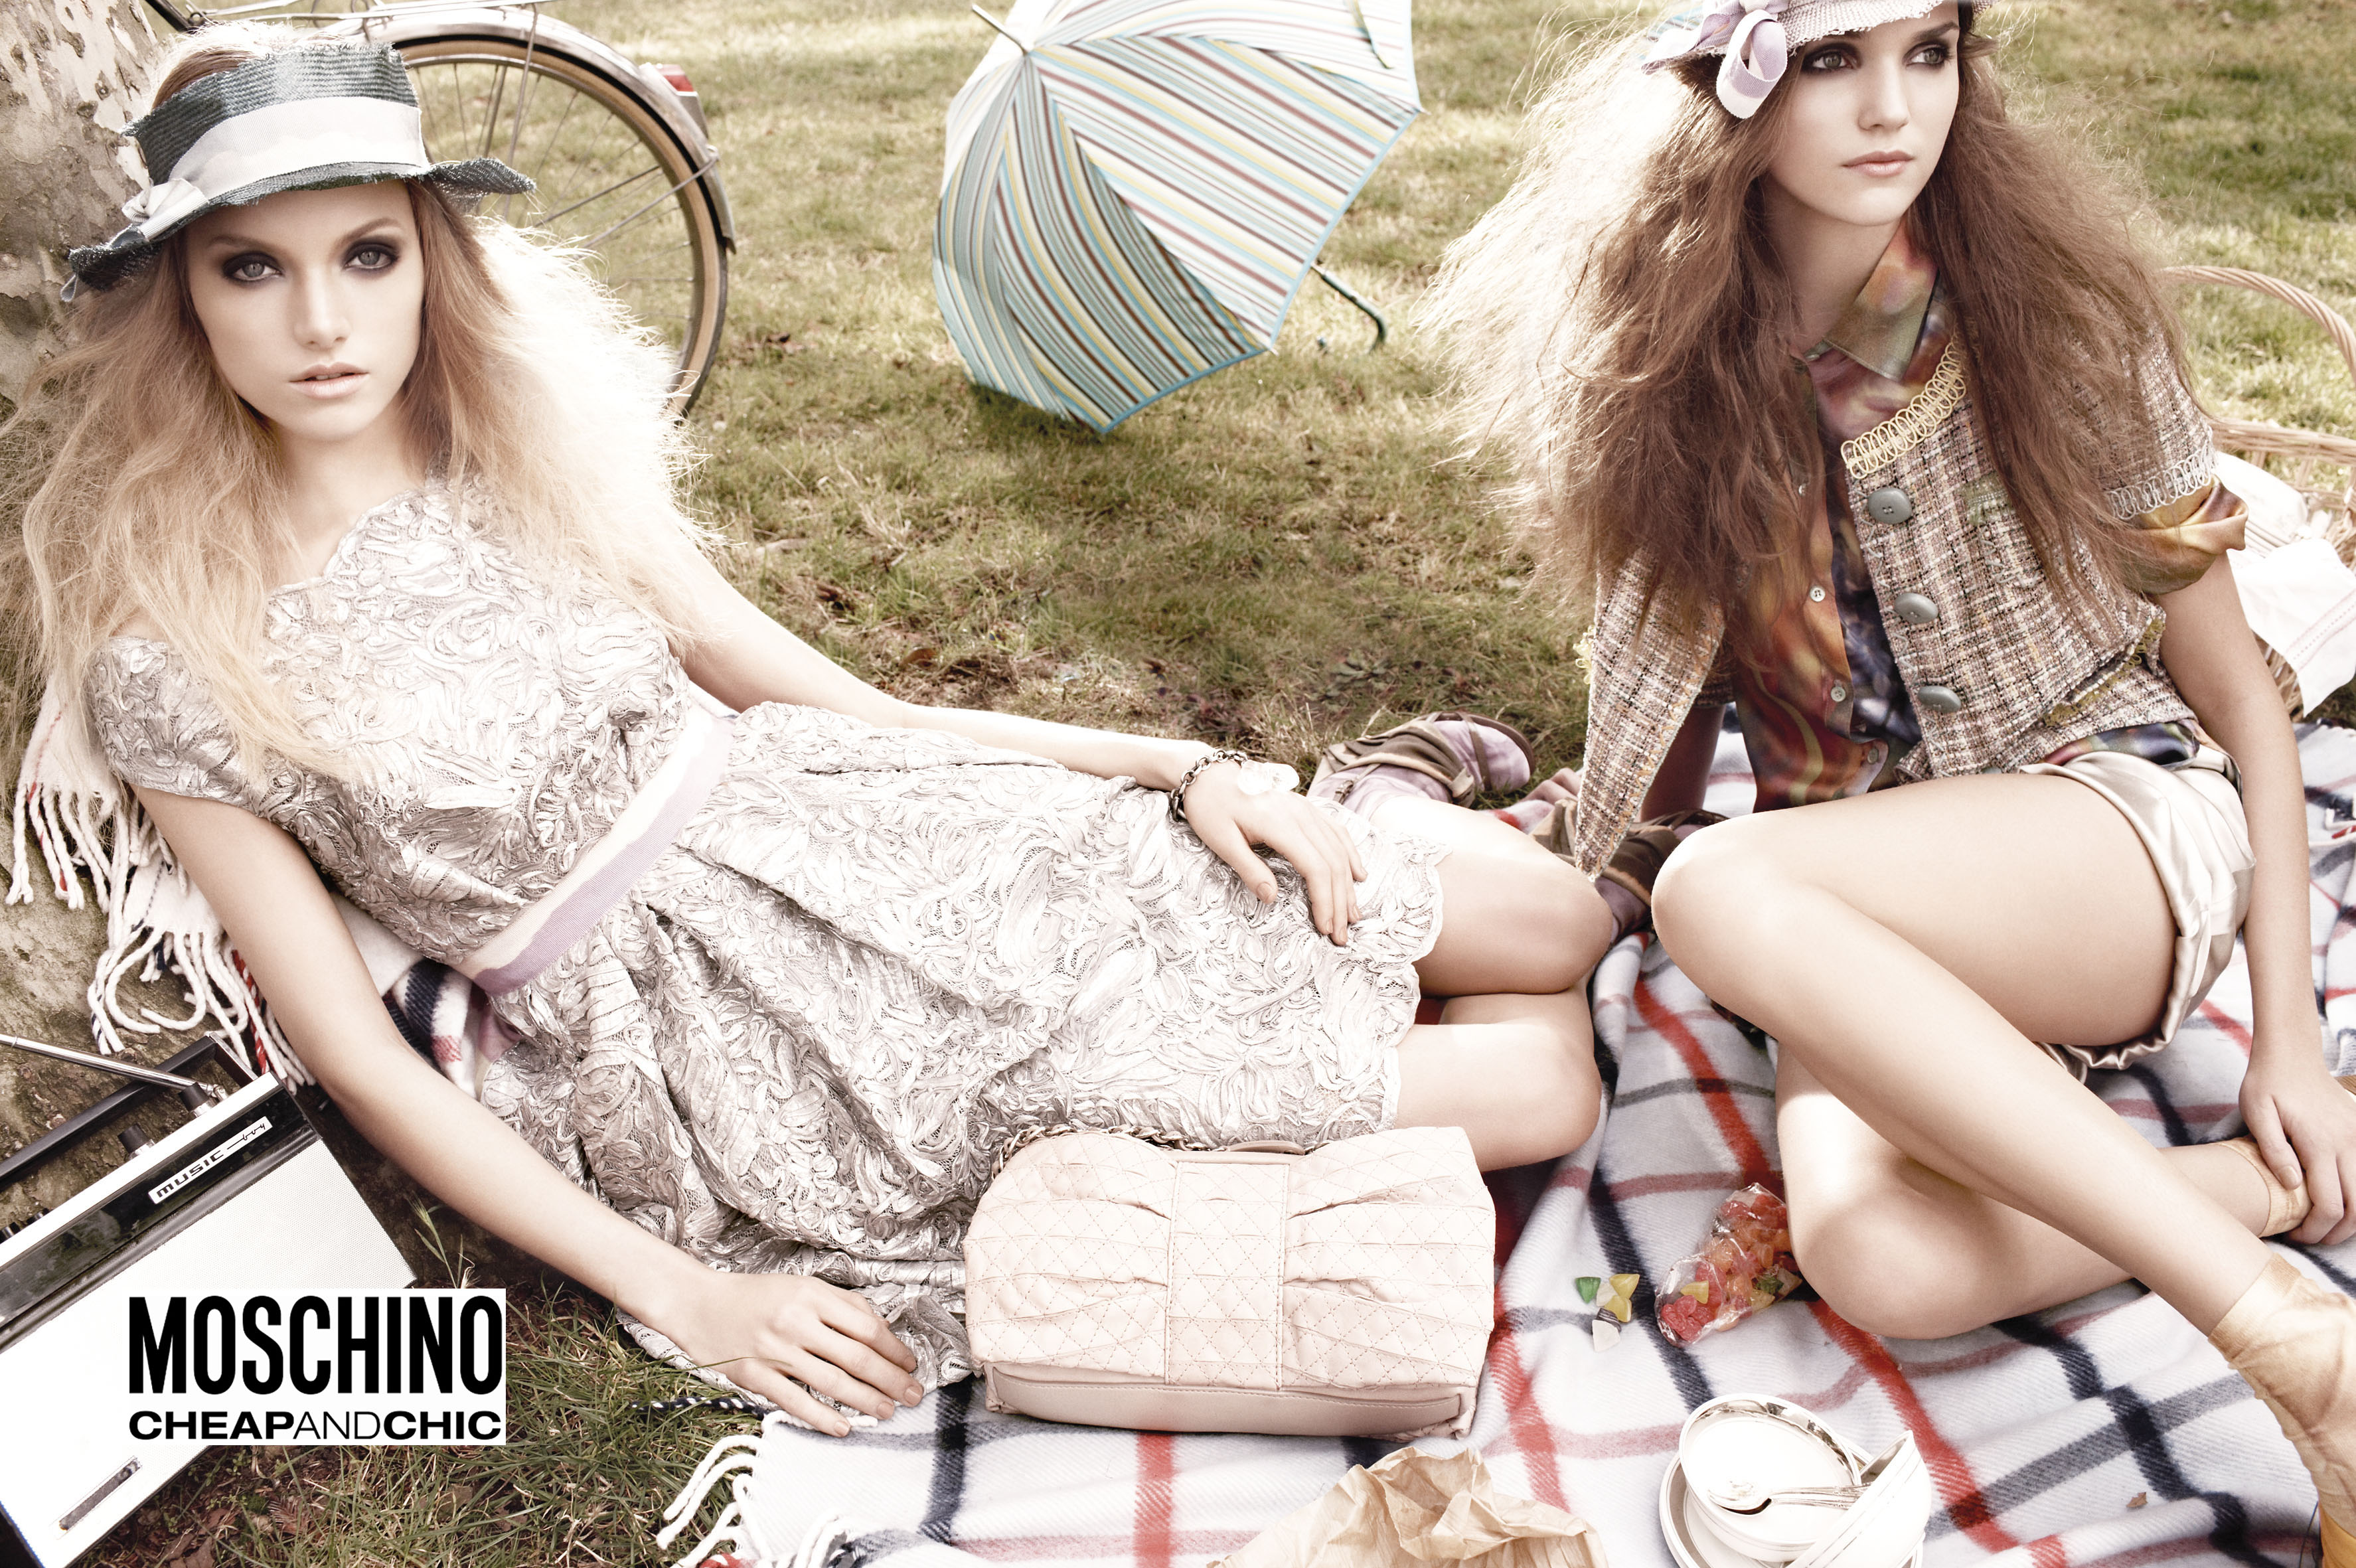 Moschino Cheap and Chic SS 2009 | Tom Munro | Moschino | Numerique Retouch Photo Retouching Studio